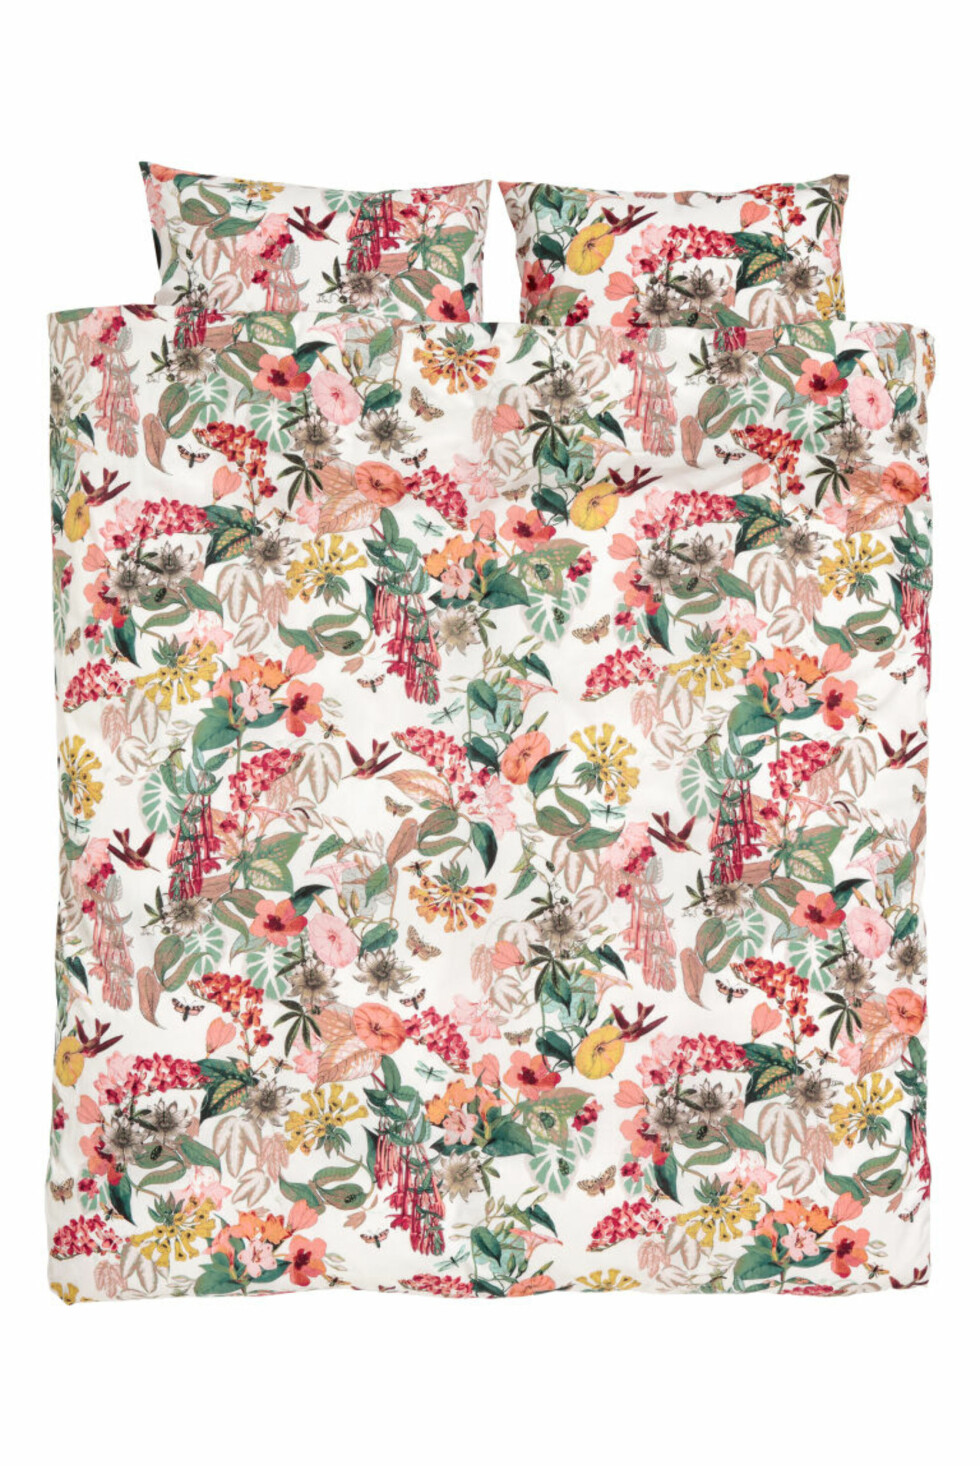 <strong>Sengesett fra H&M  499,-  http:</strong>//www2.hm.com/no_no/productpage.0575925001.html